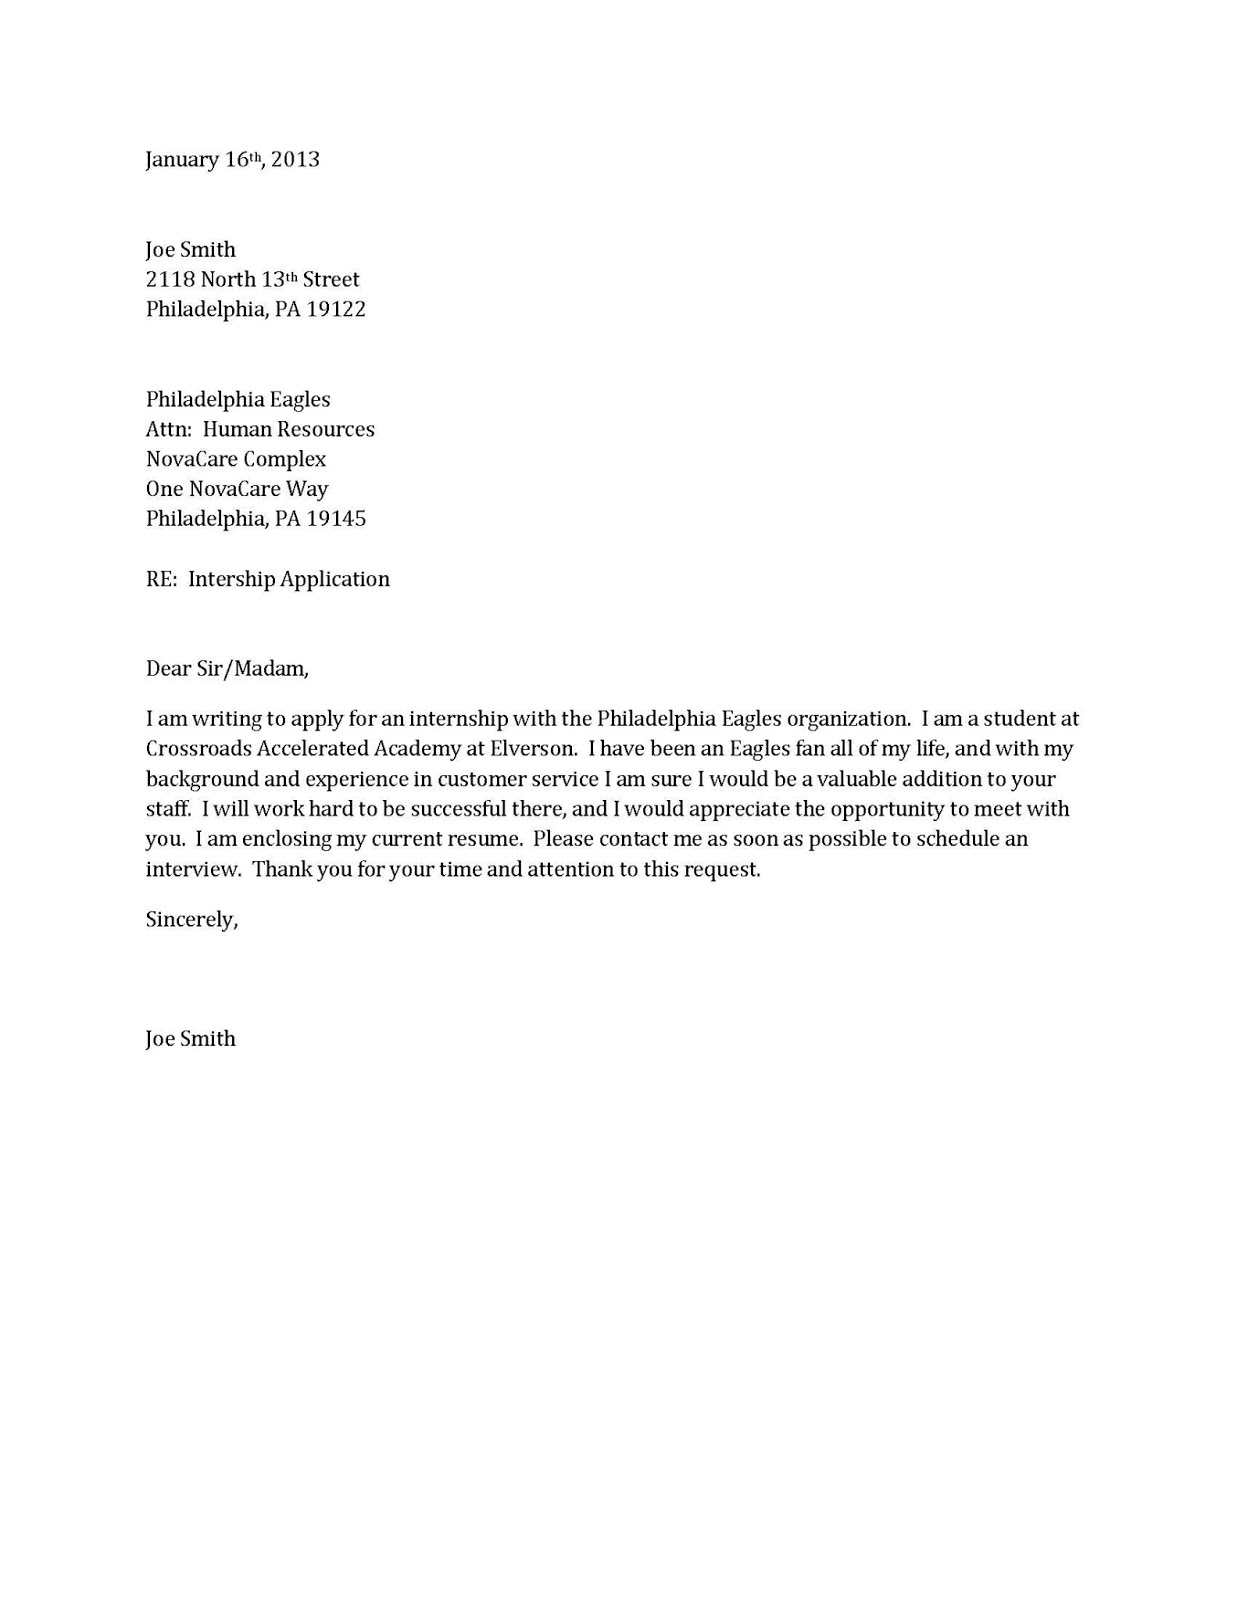 quick and easy cover letter - Asafon.ggec.co